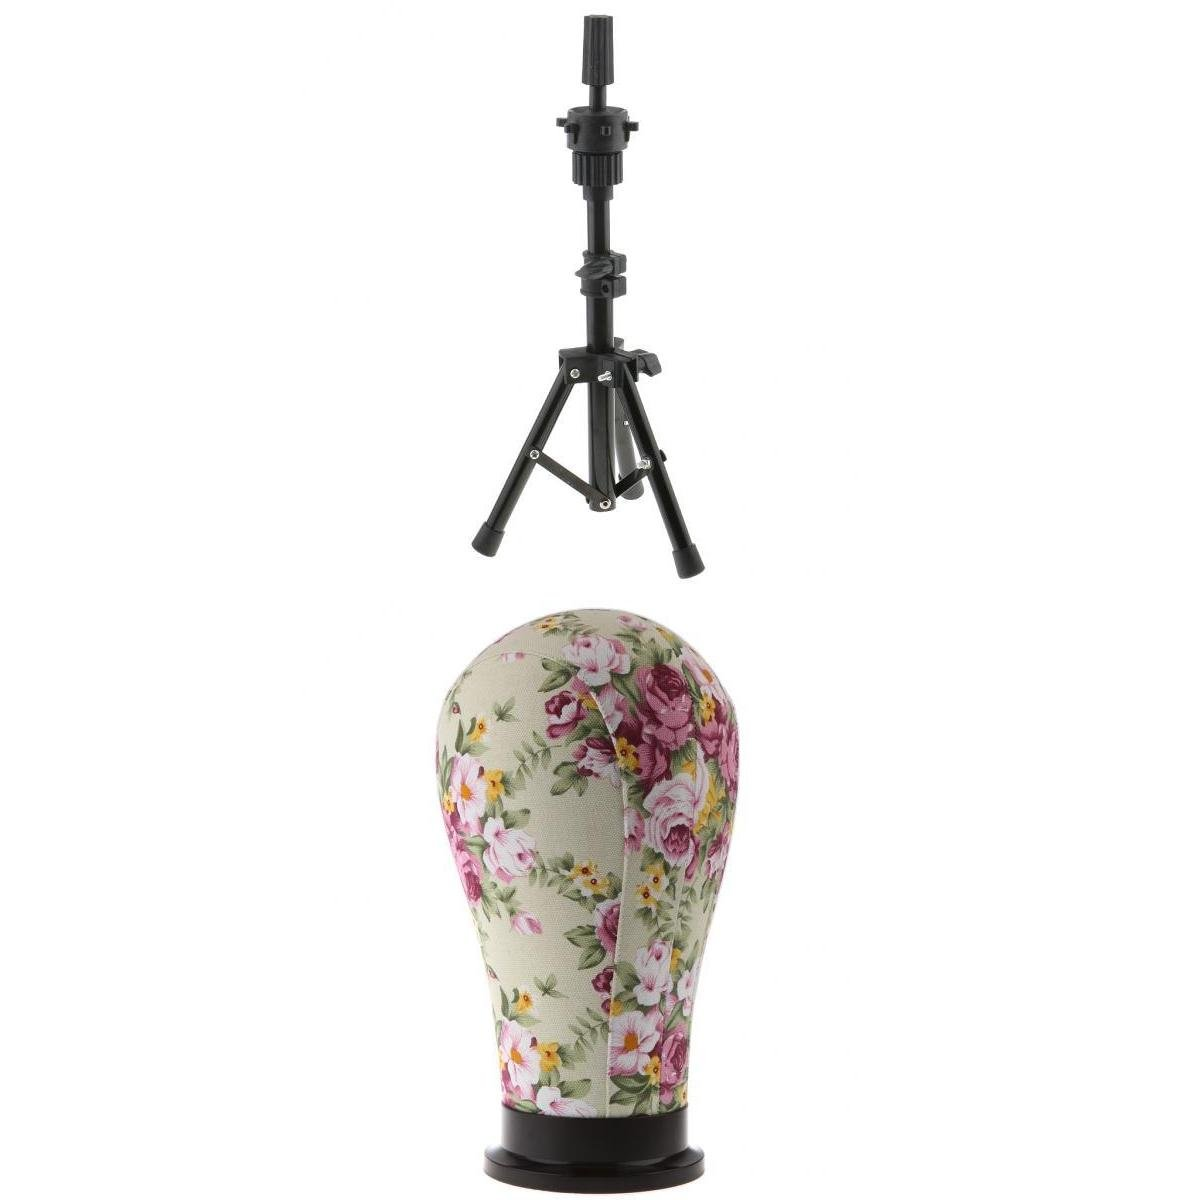 D DOLITY Adjustable Wig Head Stand Tripod Holder Mannequin Tripod for Hairdressing Training with 21 inch Wigs Making Cork Canvas Block Mannequin